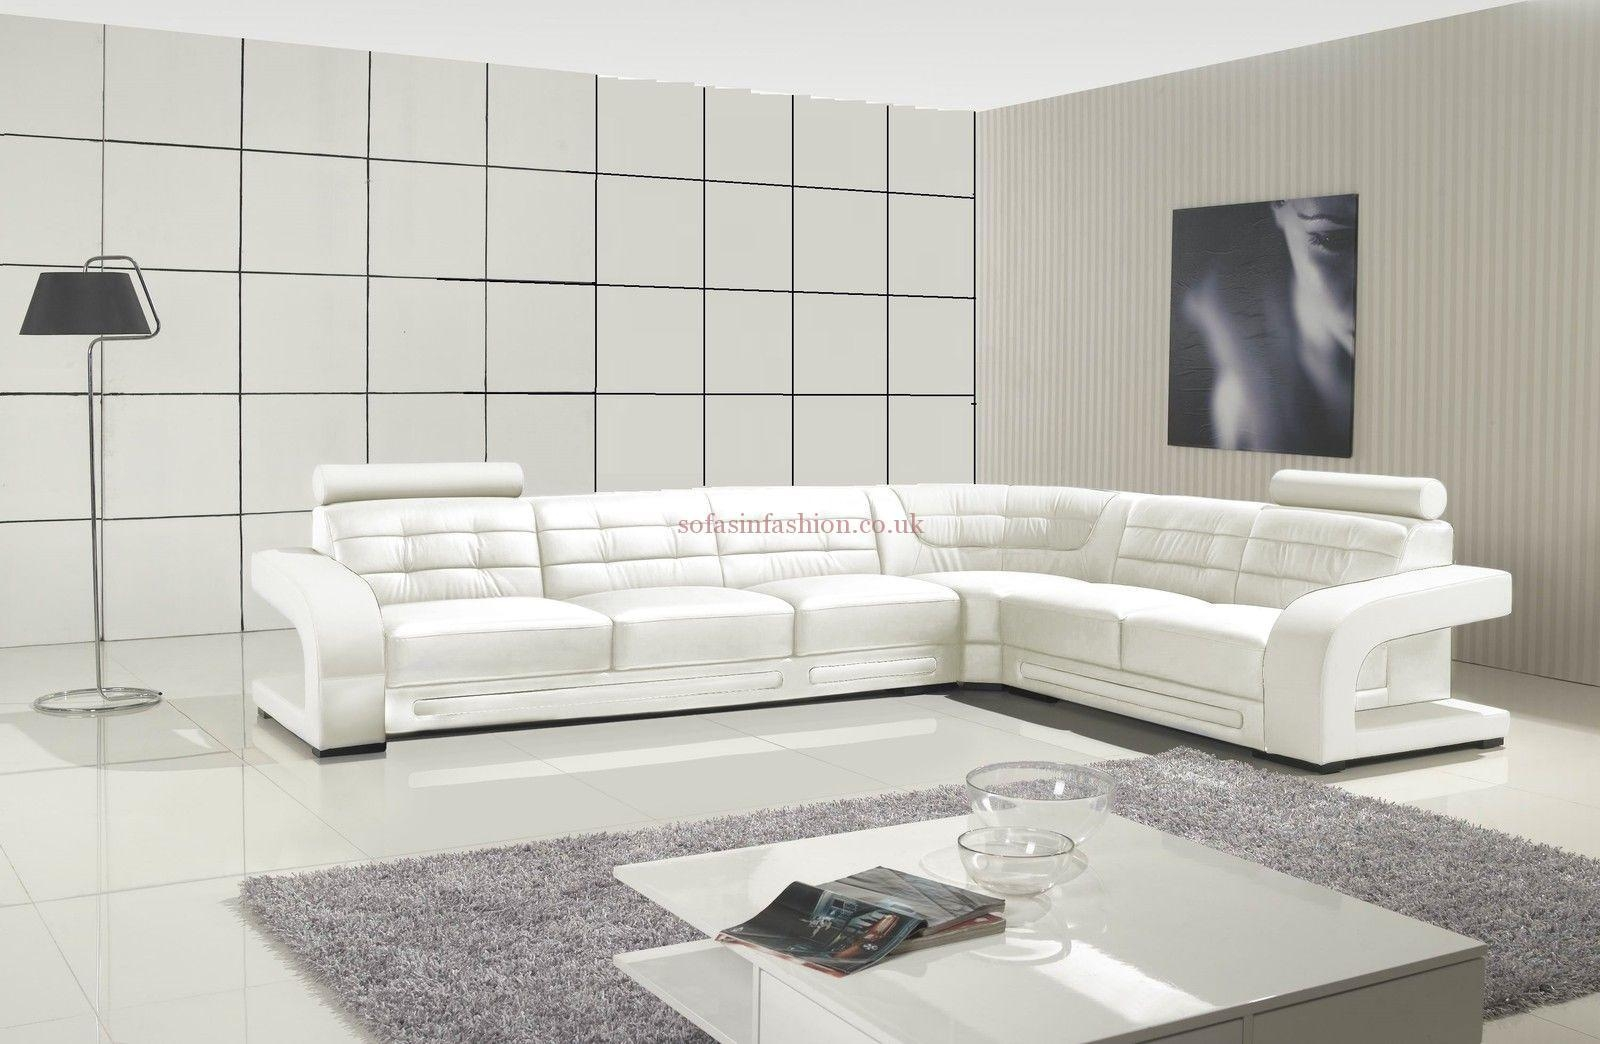 Unique Corner Sectional Sofas With Modular Leather Corner Sofa With Unique Corner Sofas (View 4 of 21)